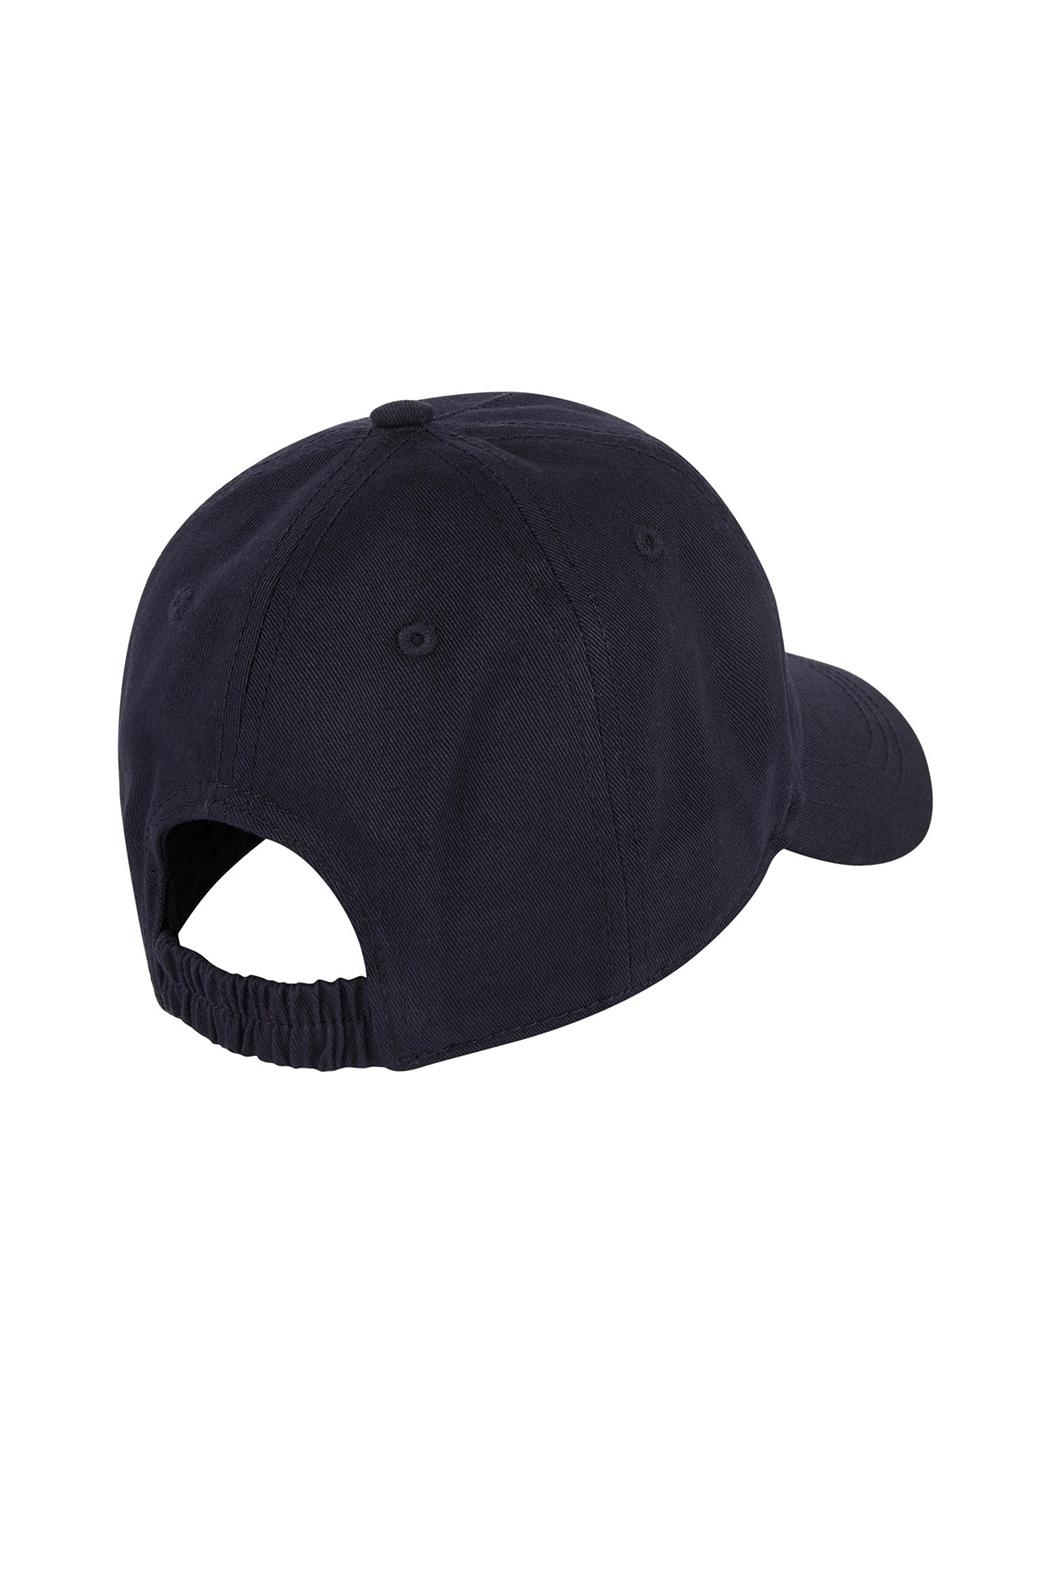 Paul Smith Junior Navy-Blue 'Dino' Cap - Front Full Image